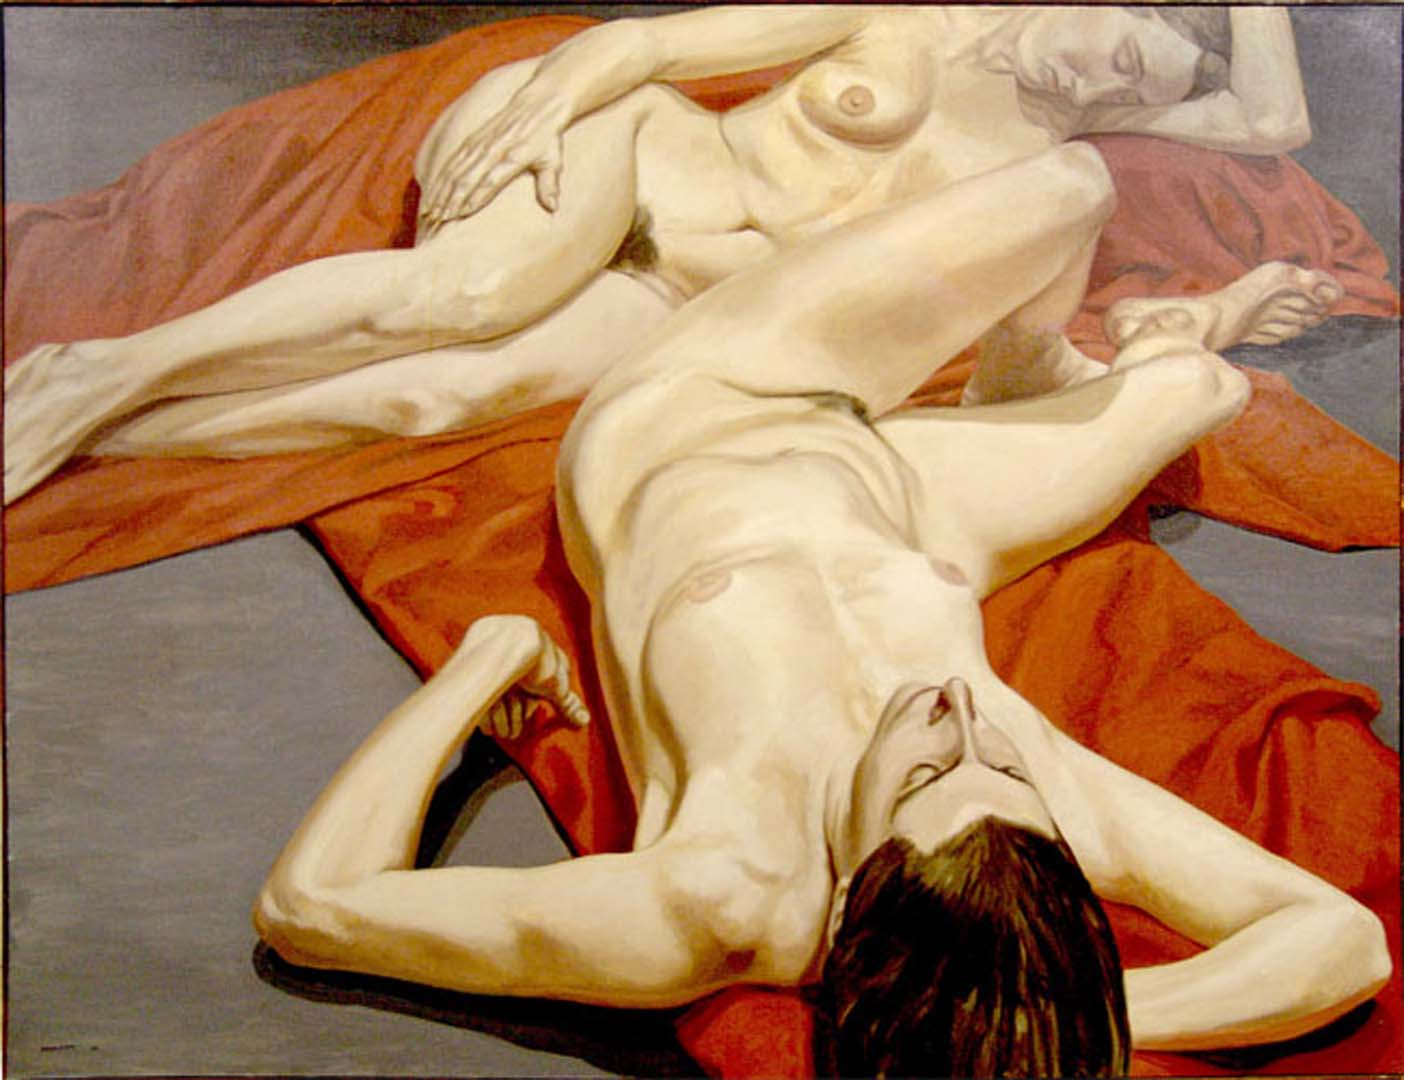 1965 Two Nudes with Red Drape Oil on Canvas 54 x 70